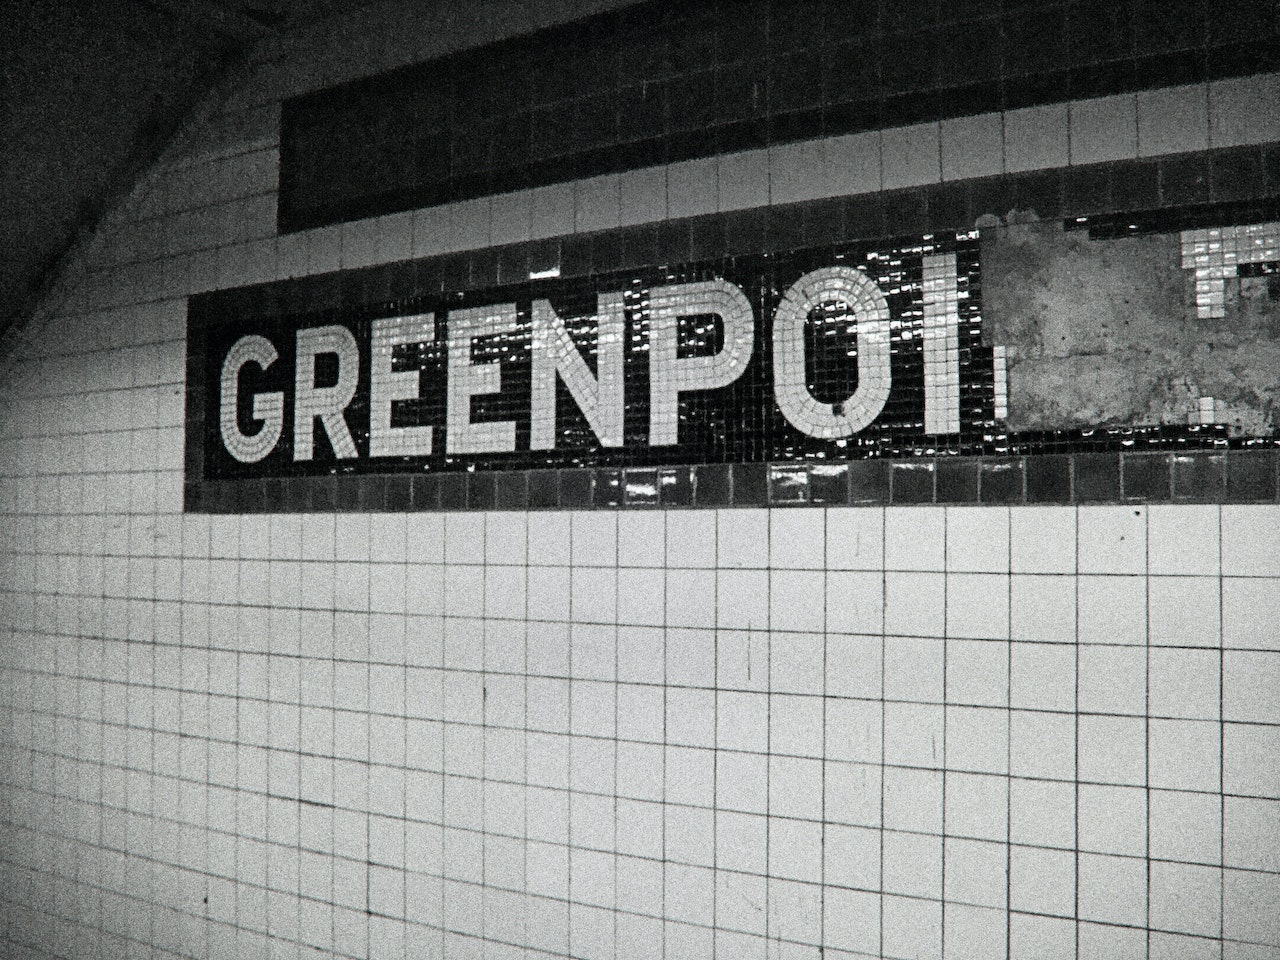 Greenpoint to Queens to Manhattan